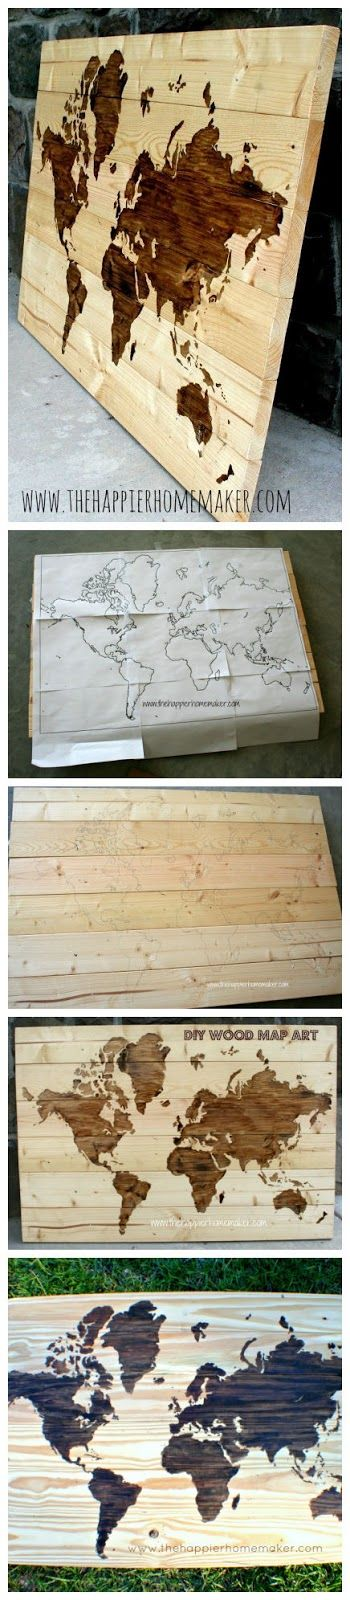 Diy wooden world map art hang on wall then stick straight pins in diy wooden world map art hang on wall then stick straight pins in where gumiabroncs Images